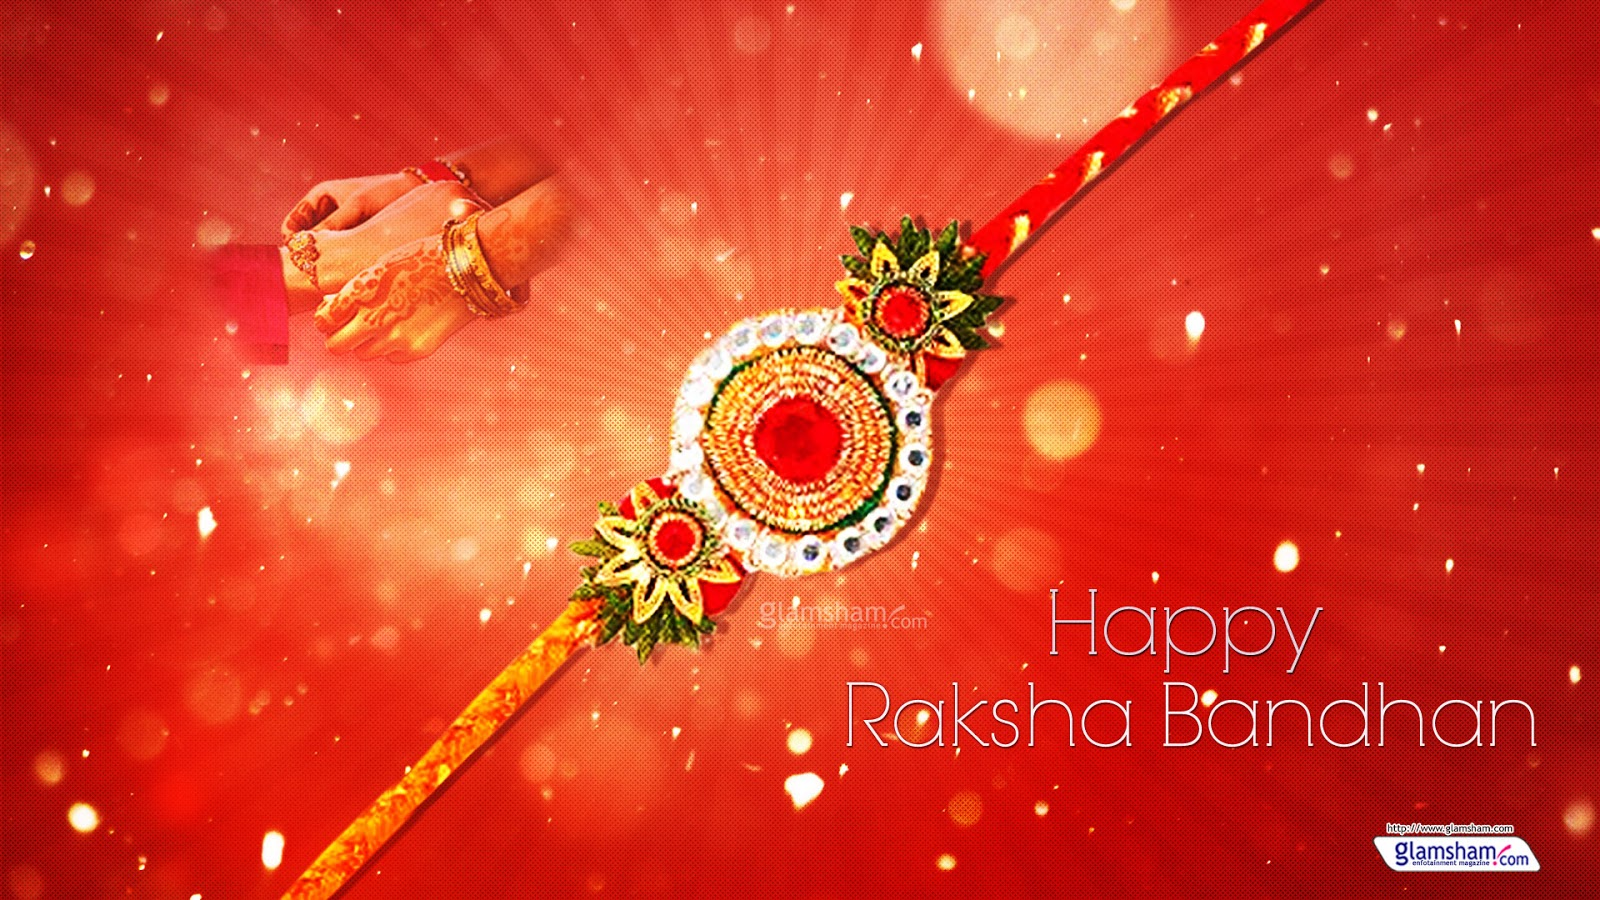 Happy raksha bandhan shayari 2018 quotessmswishes in hindi happy today we will see happy raksha bandhan shayari 2018 quotes sms in hindi altavistaventures Choice Image